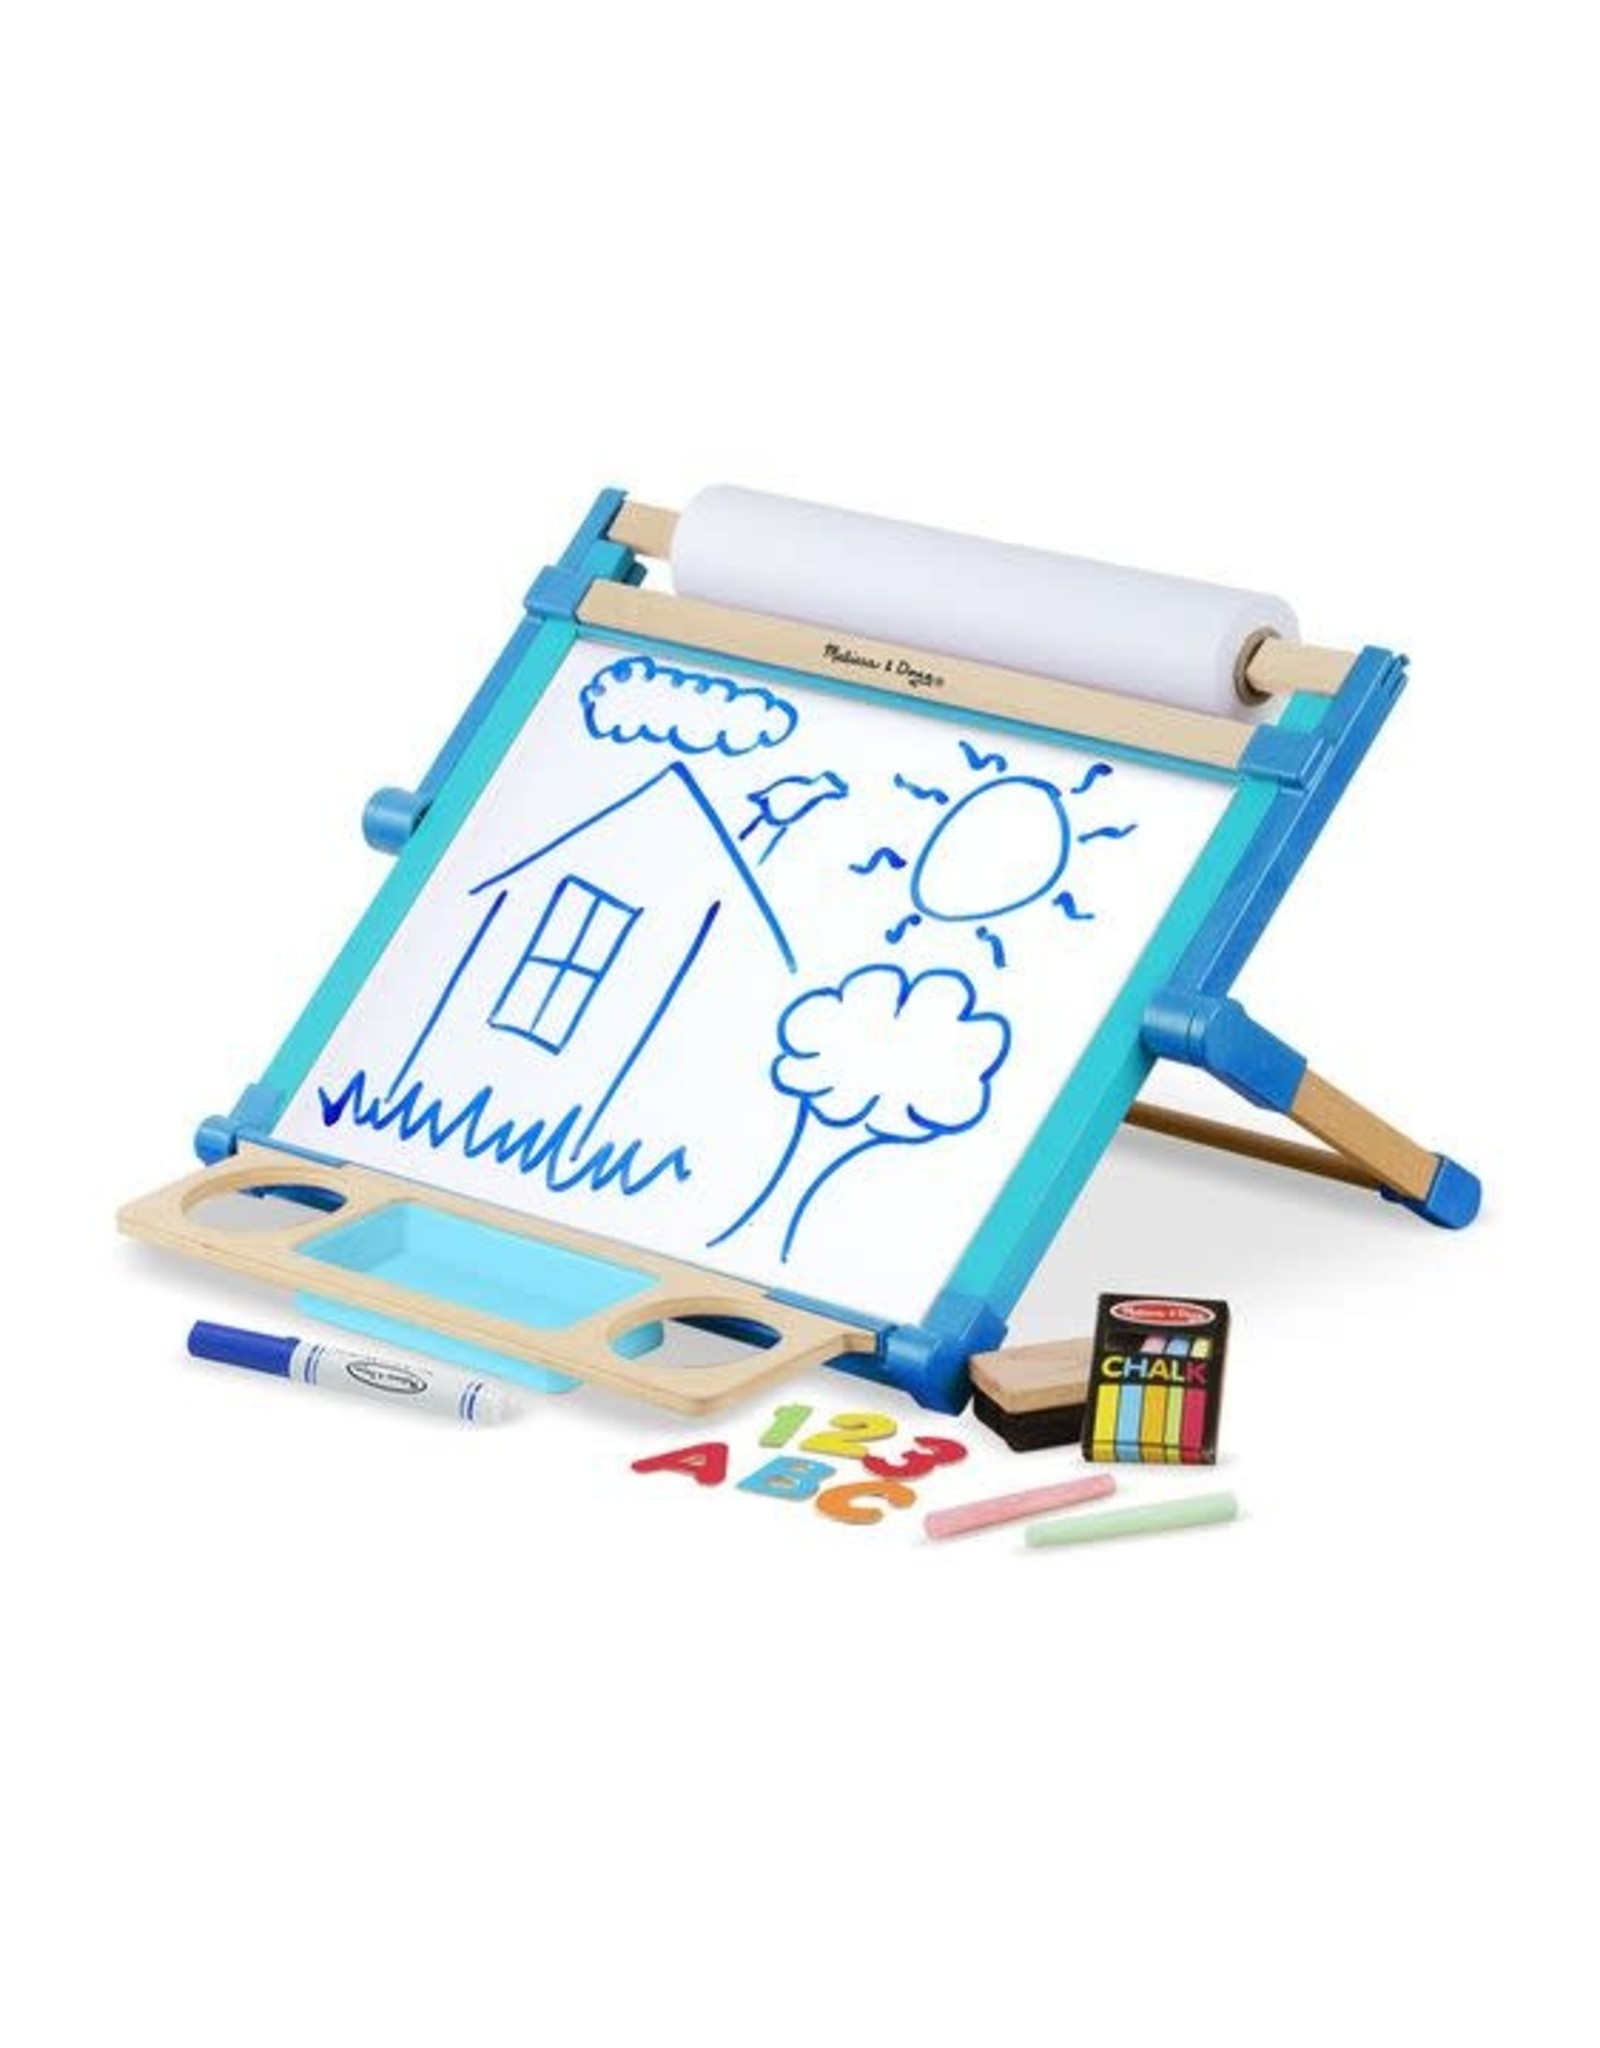 Deluxe Double Tabletop Easel